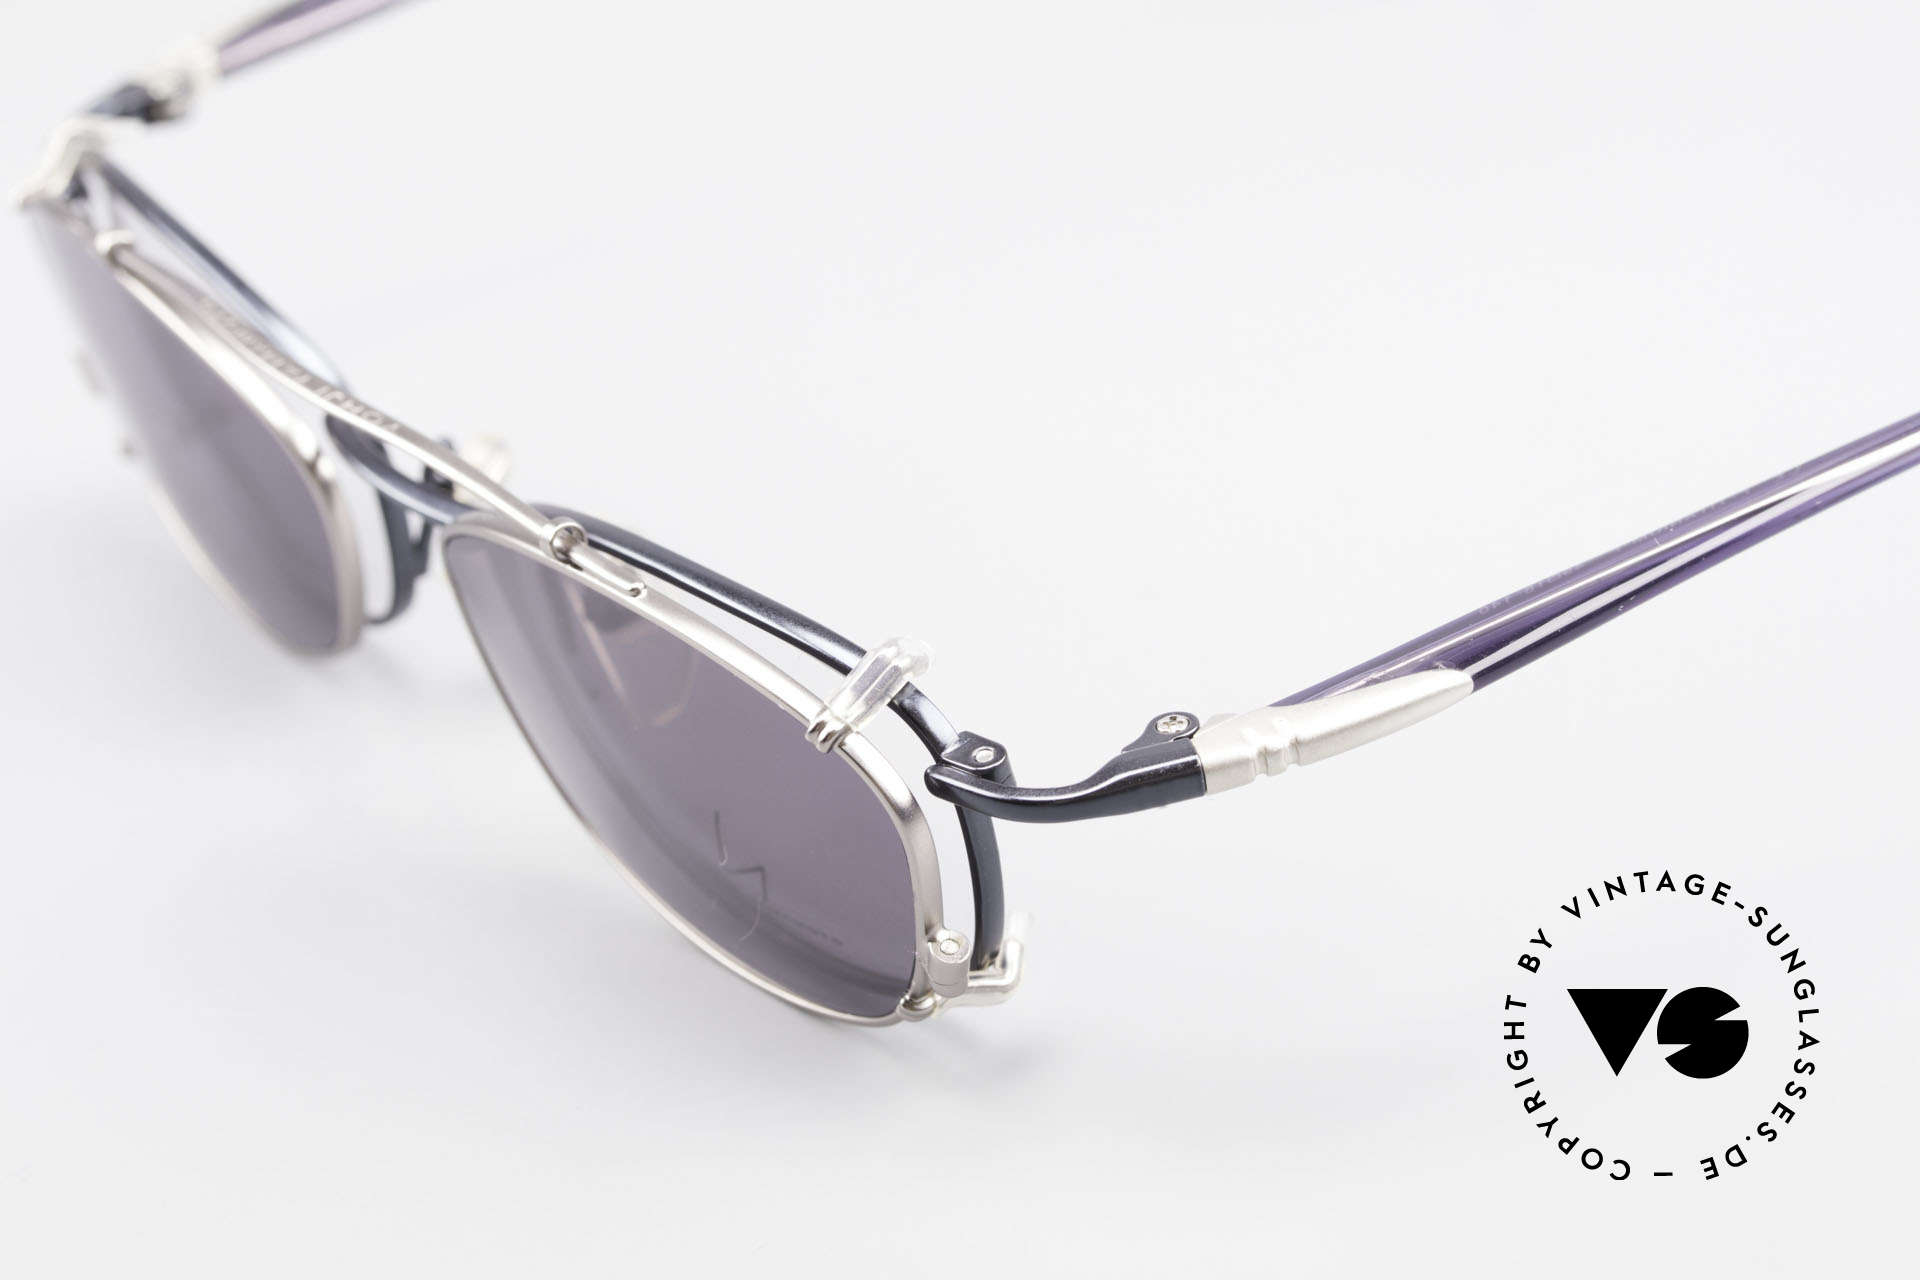 Yohji Yamamoto 51-0013 Clip On Titanium Frame Blue, original YY demo lenses can be replaced optionally, Made for Men and Women